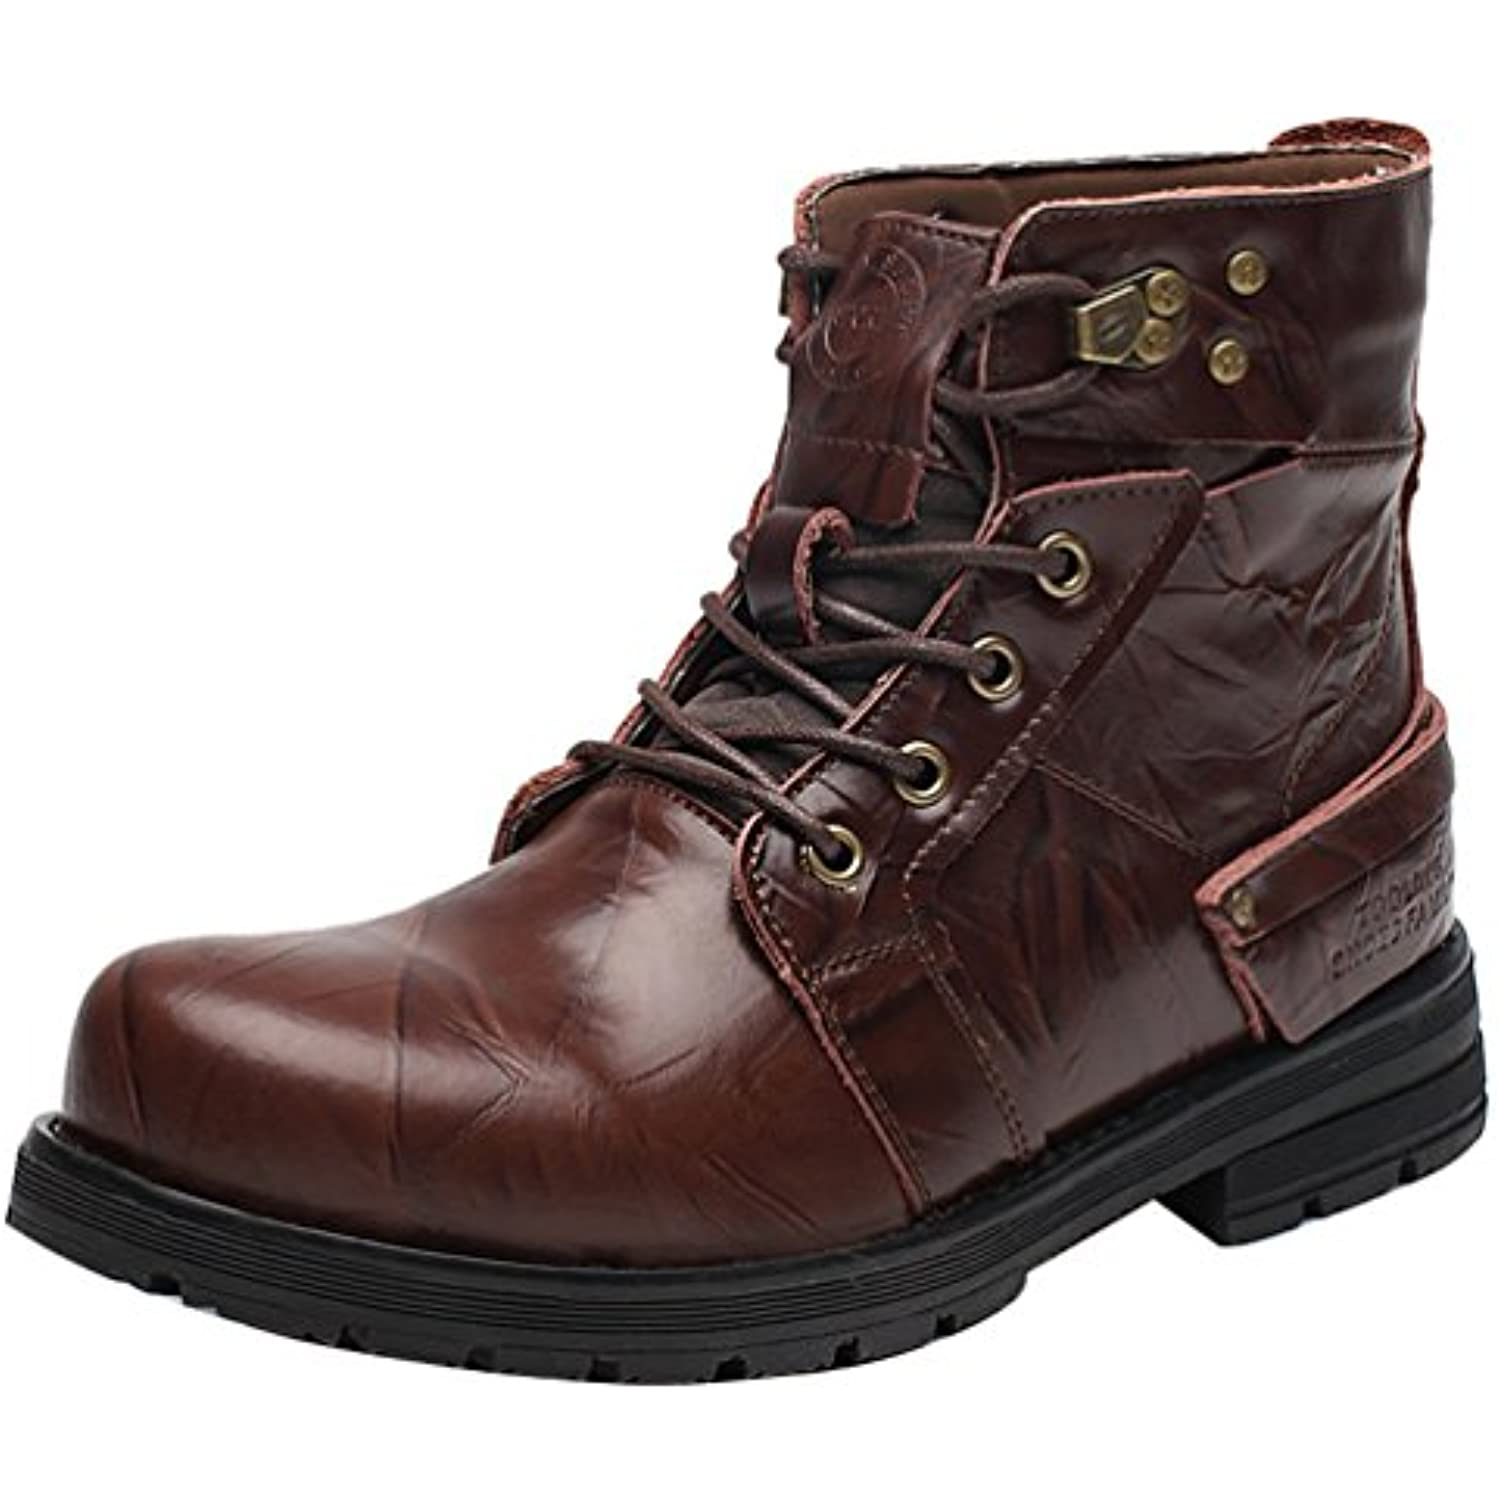 QYY-5588 New  s Leather Leisure High Top Warm Athletic Warm Top Working Boots DarkBrown 41 EU - B01N5XEL4G - 4c61a9